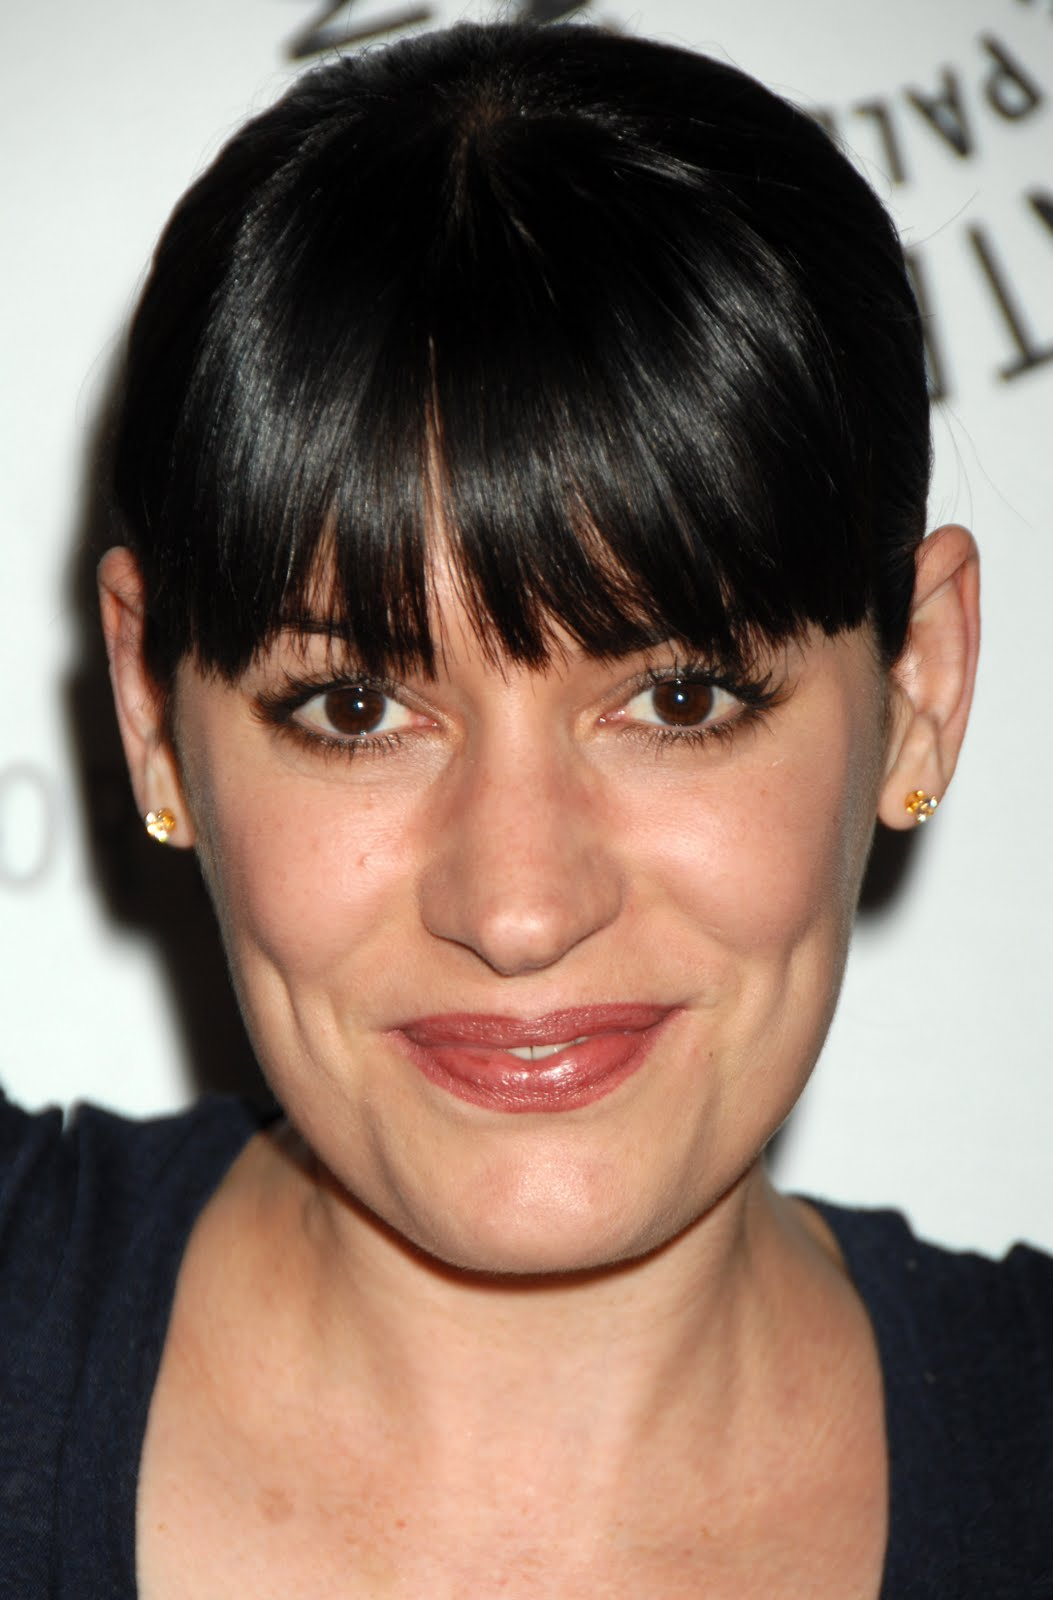 Criminal Girls 2 Wallpaper Paget Brewster Photos Tv Series Posters And Cast